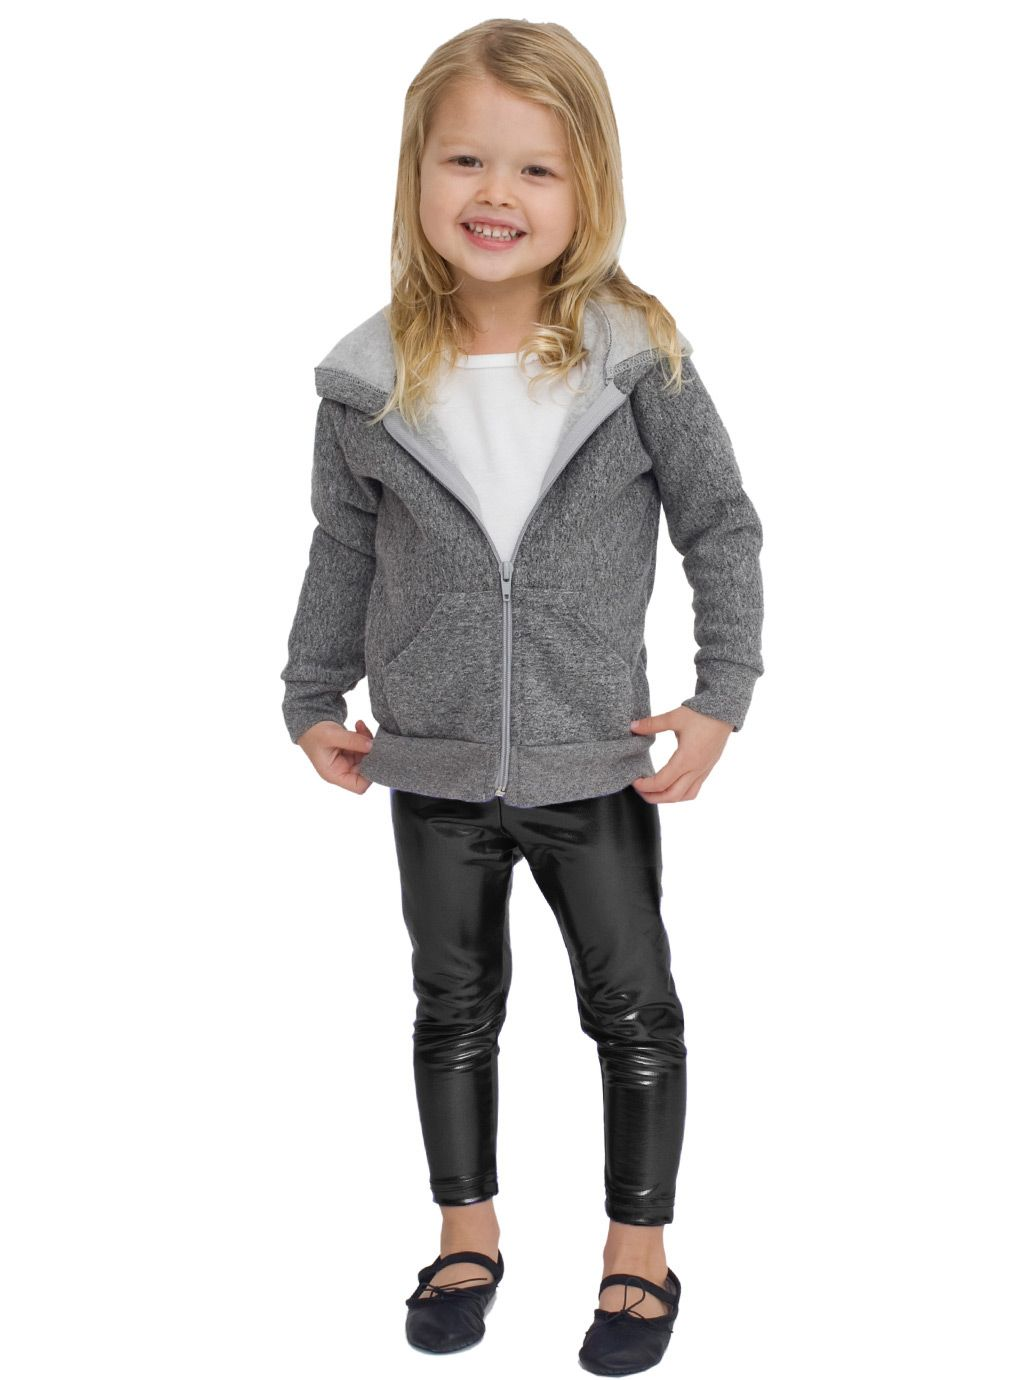 These HDE Girl's Shiny Leggings are available in multiple sizes and a variety of fun colors. HDE Girl's Shiny Wet Look Leggings Kids Liquid Metallic Footless Tights, Silver, 4/5: Shiny, metallic-sheen ankle length leggings for girls ages